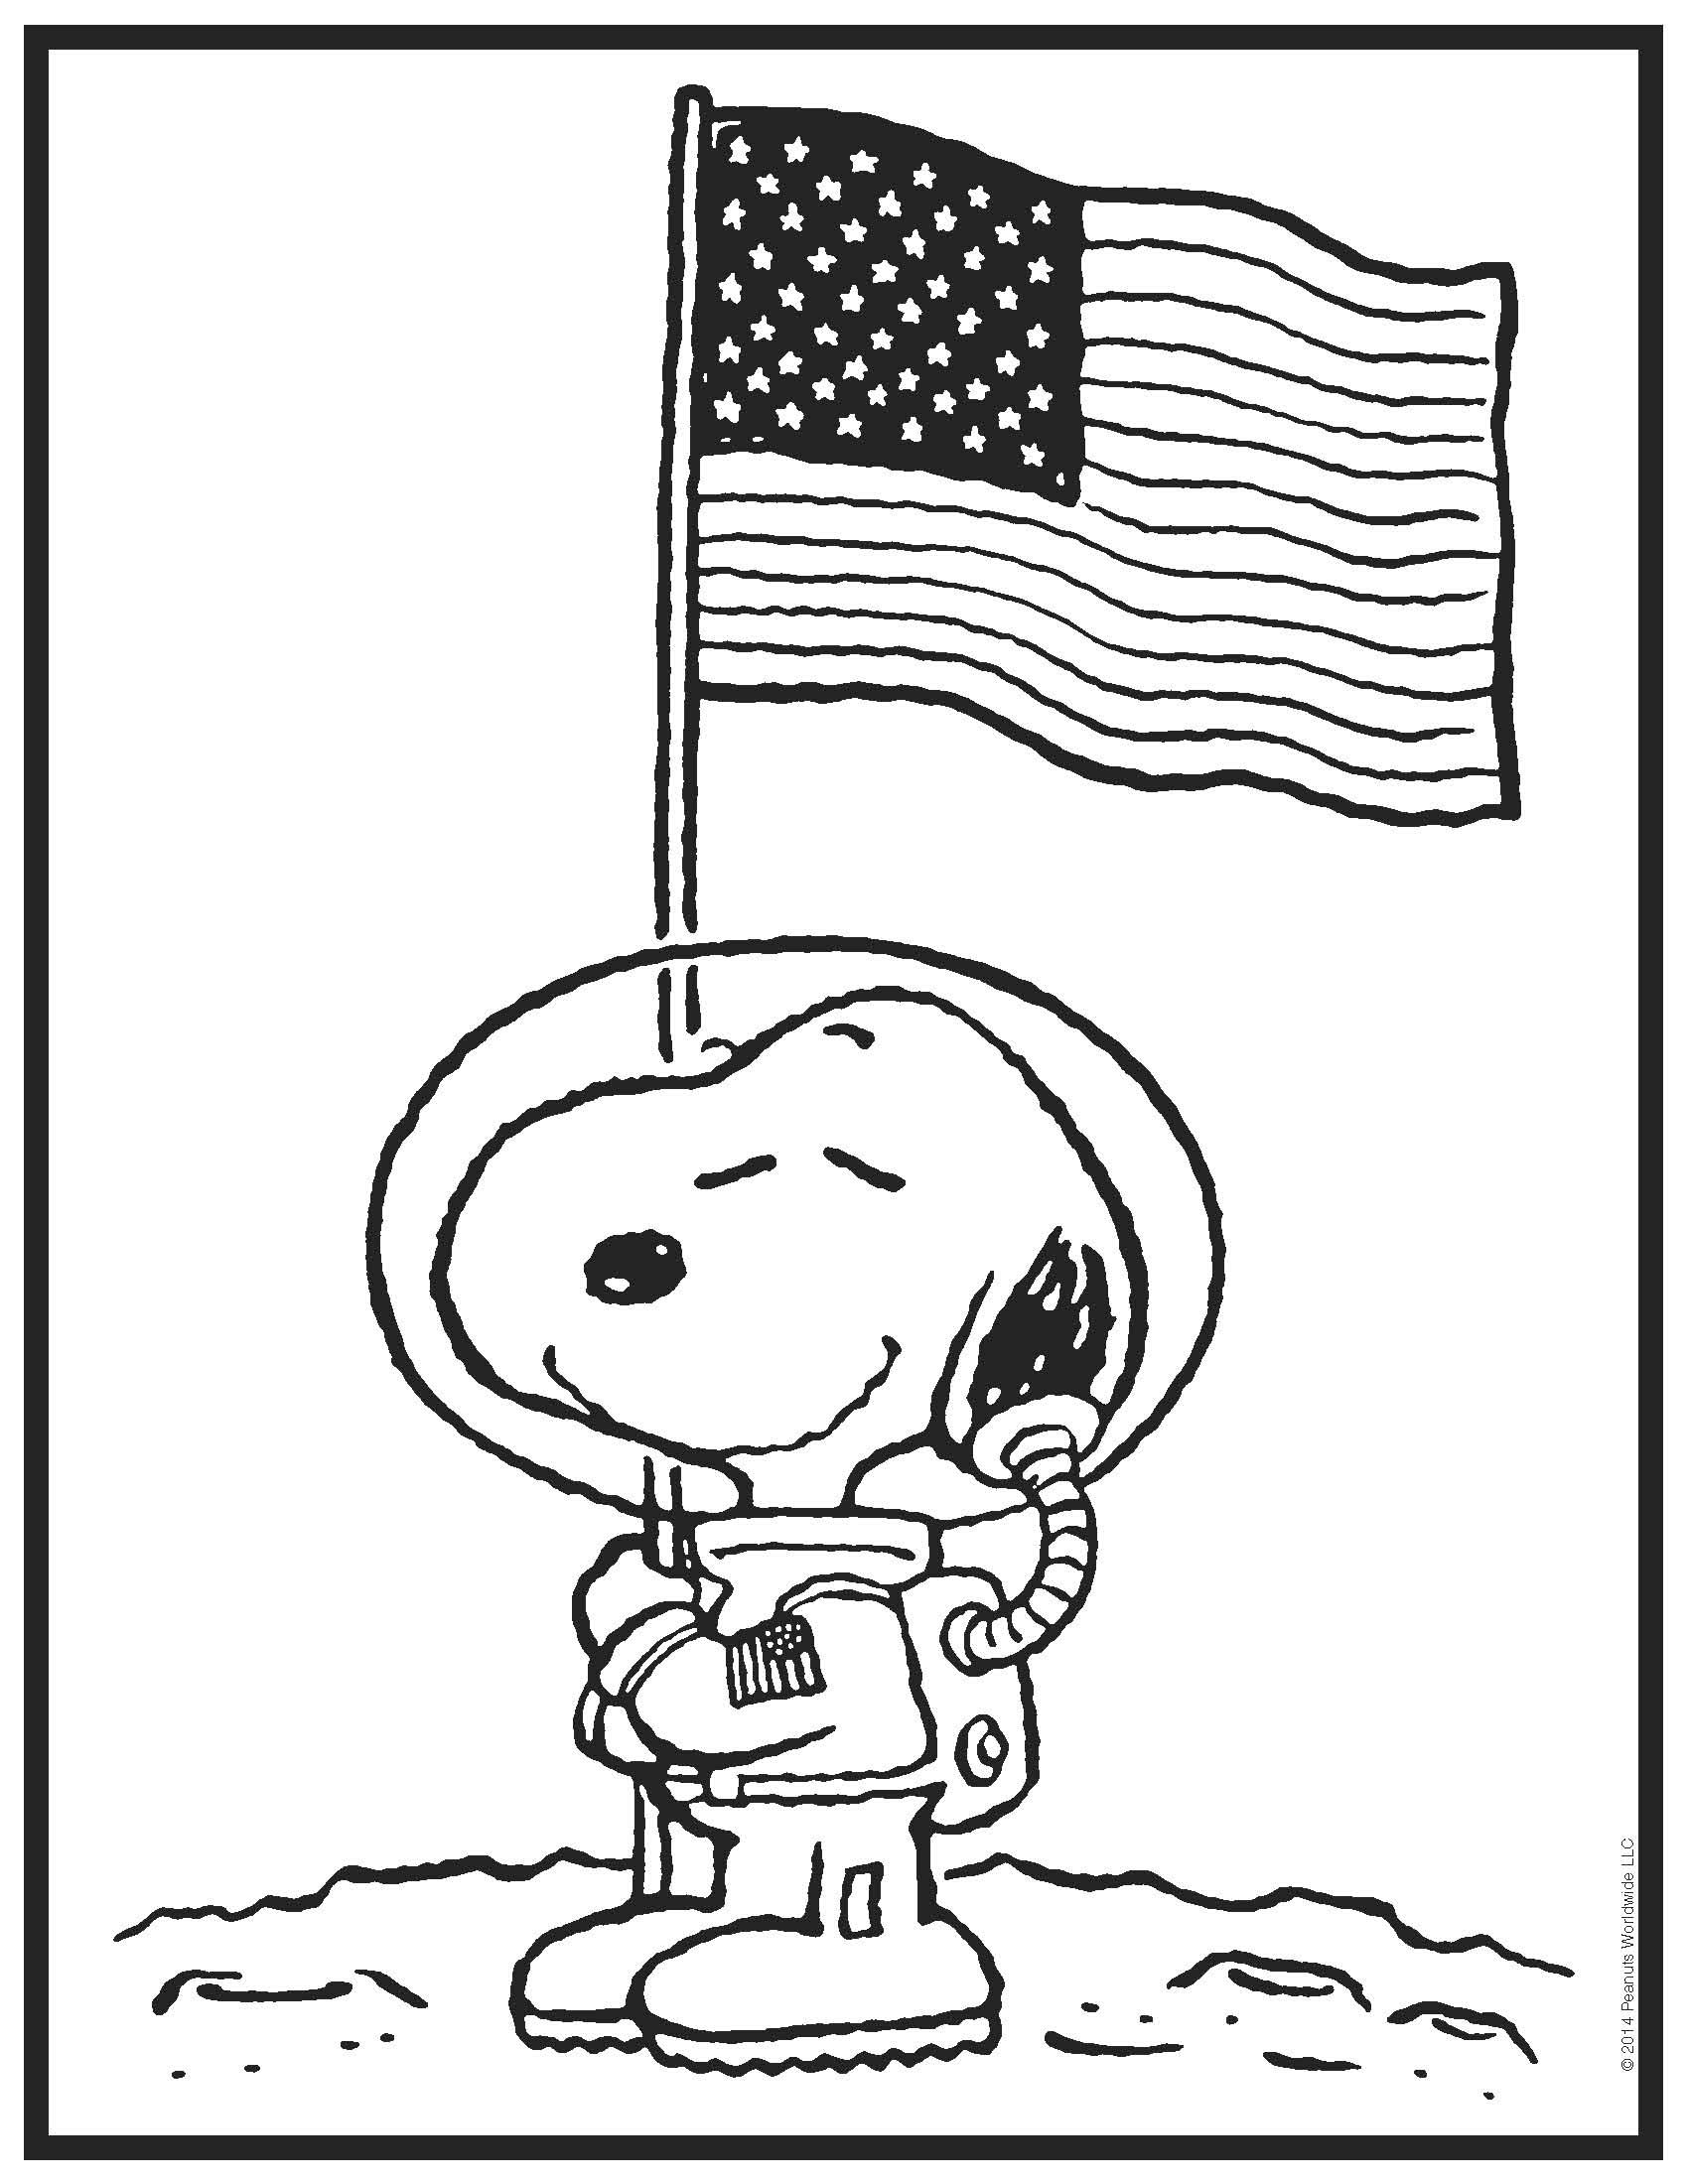 Free coloring pages of lucy from charlie brown | Adult coloring ...